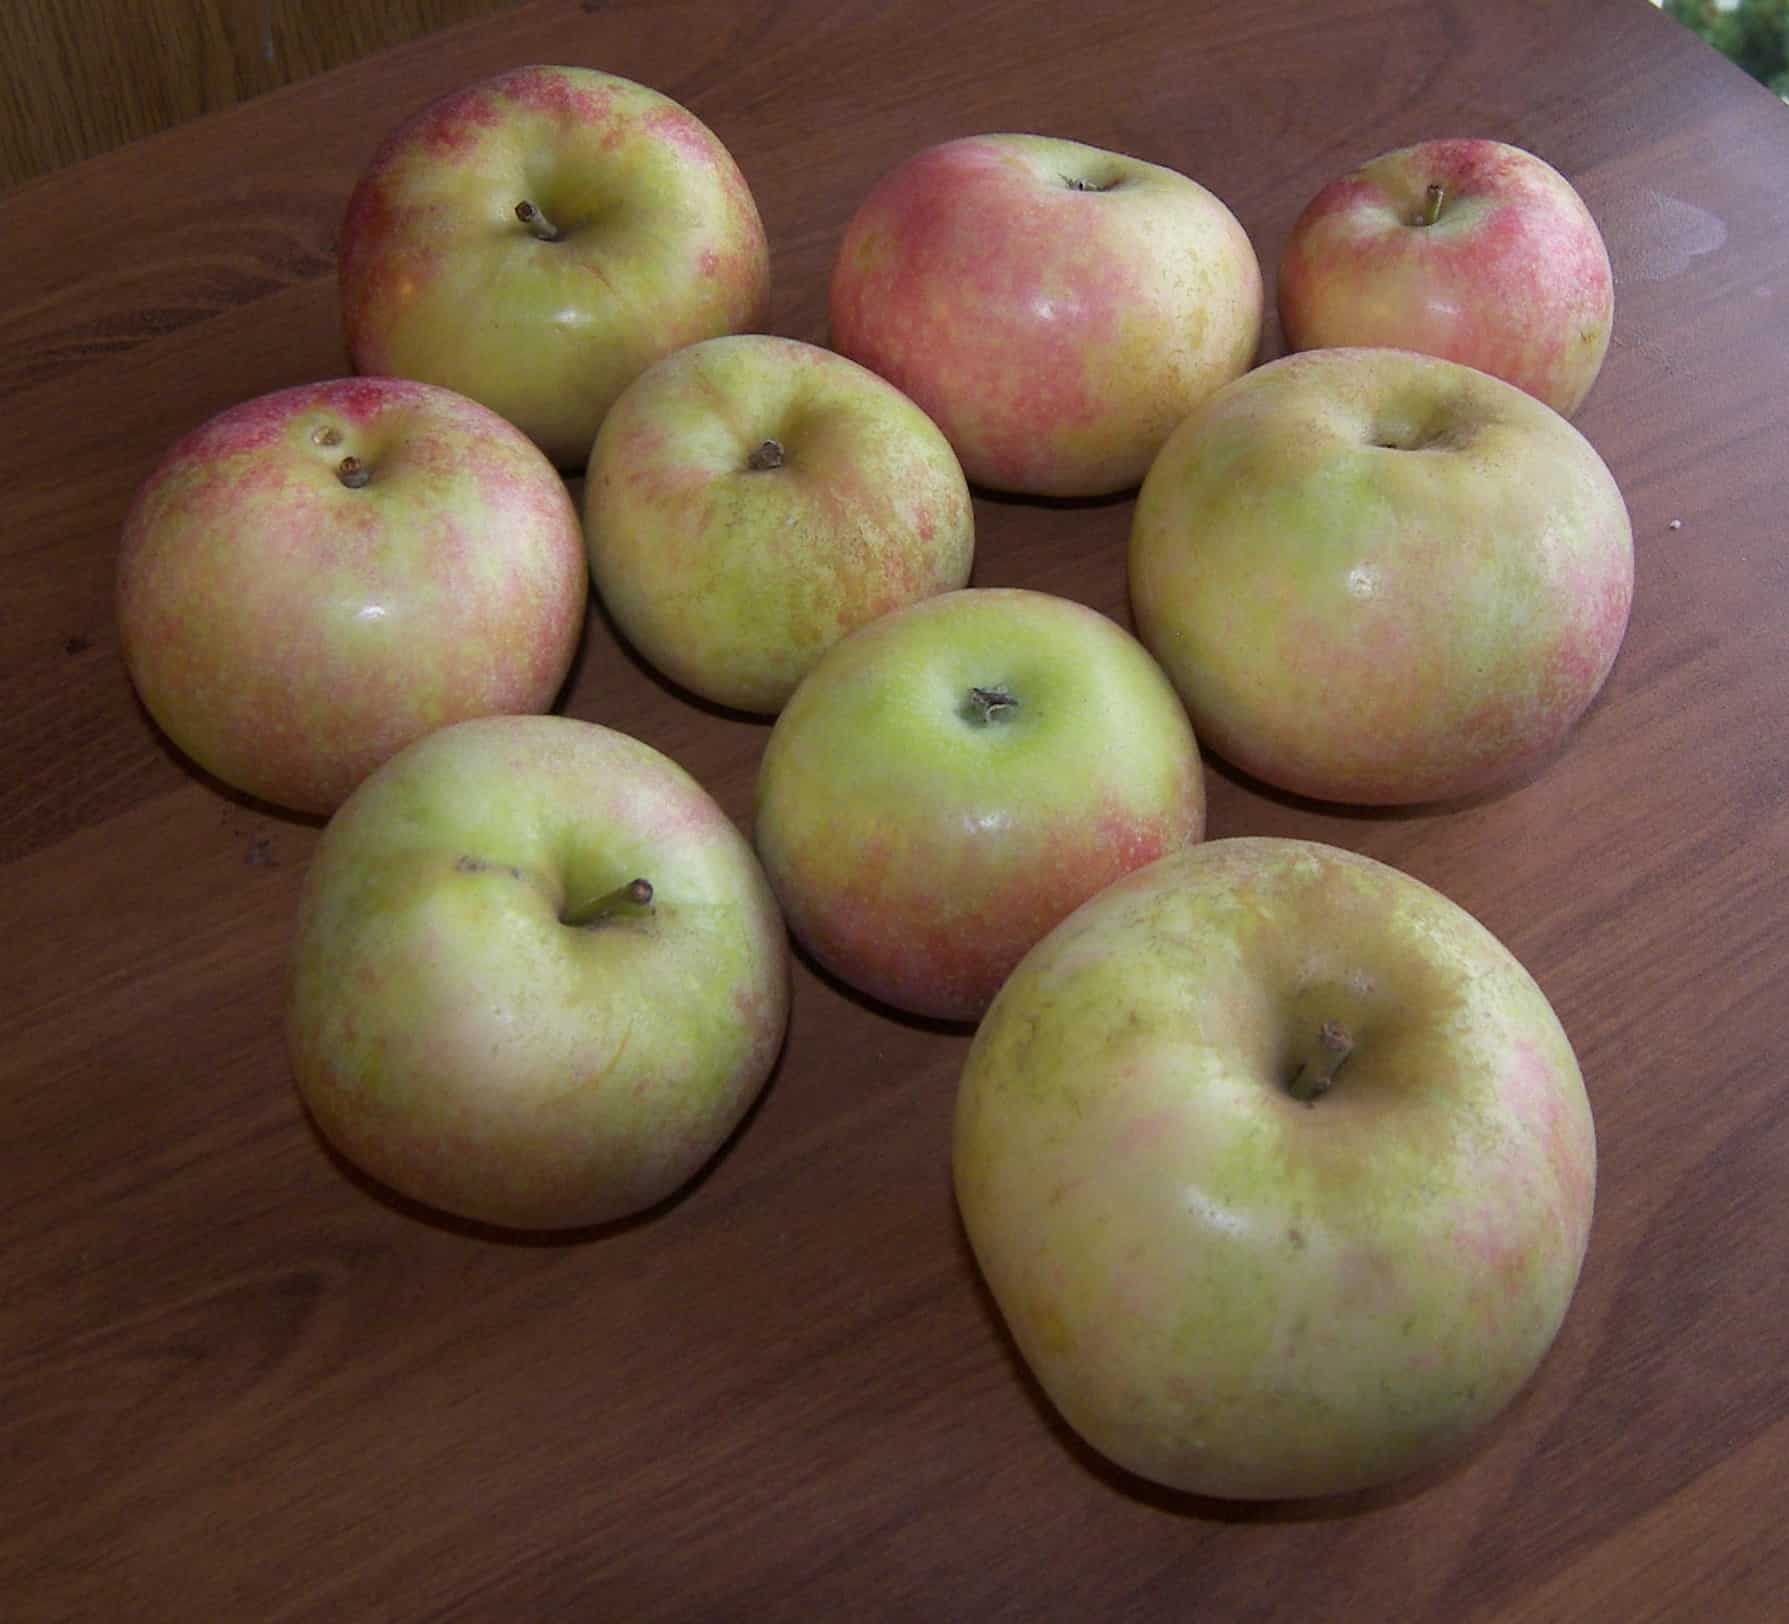 Green Apple Varieties http://www.eatlikenoone.com/red-astrachan-apple.htm